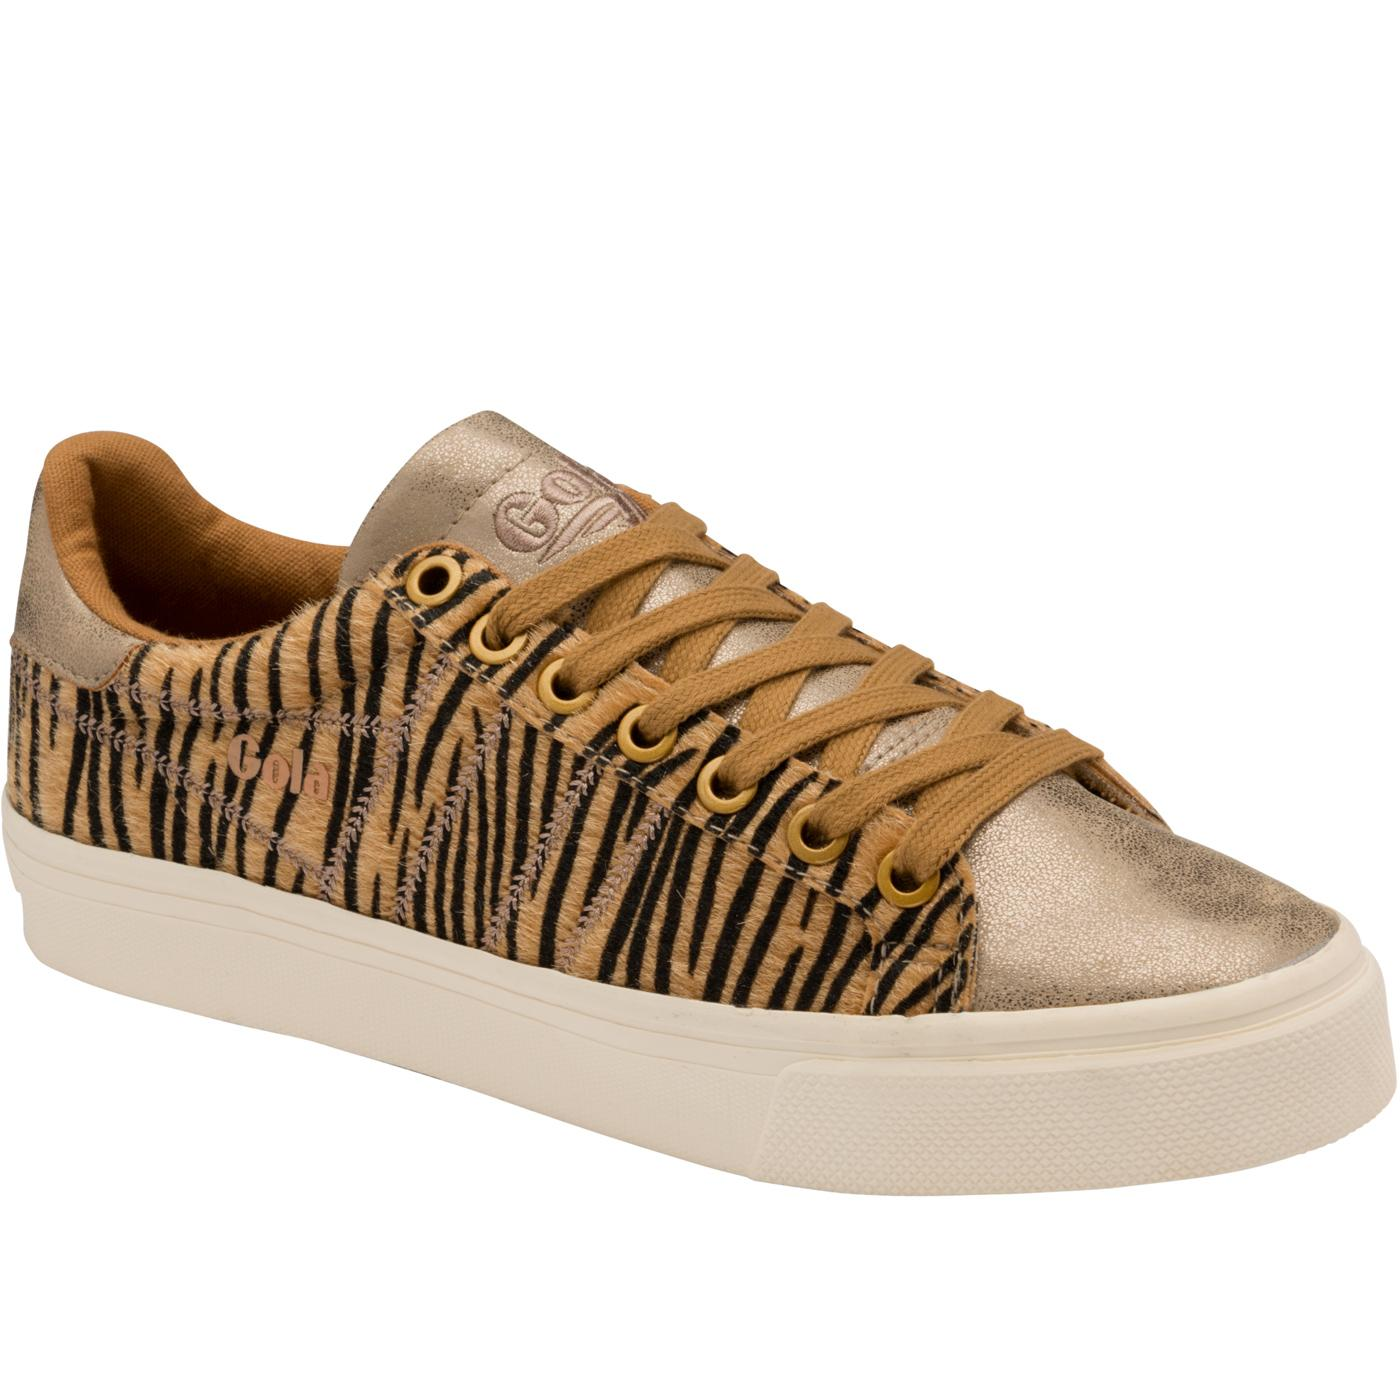 Orchid II GOLA Women's Retro Trainers (Tiger/Gold)